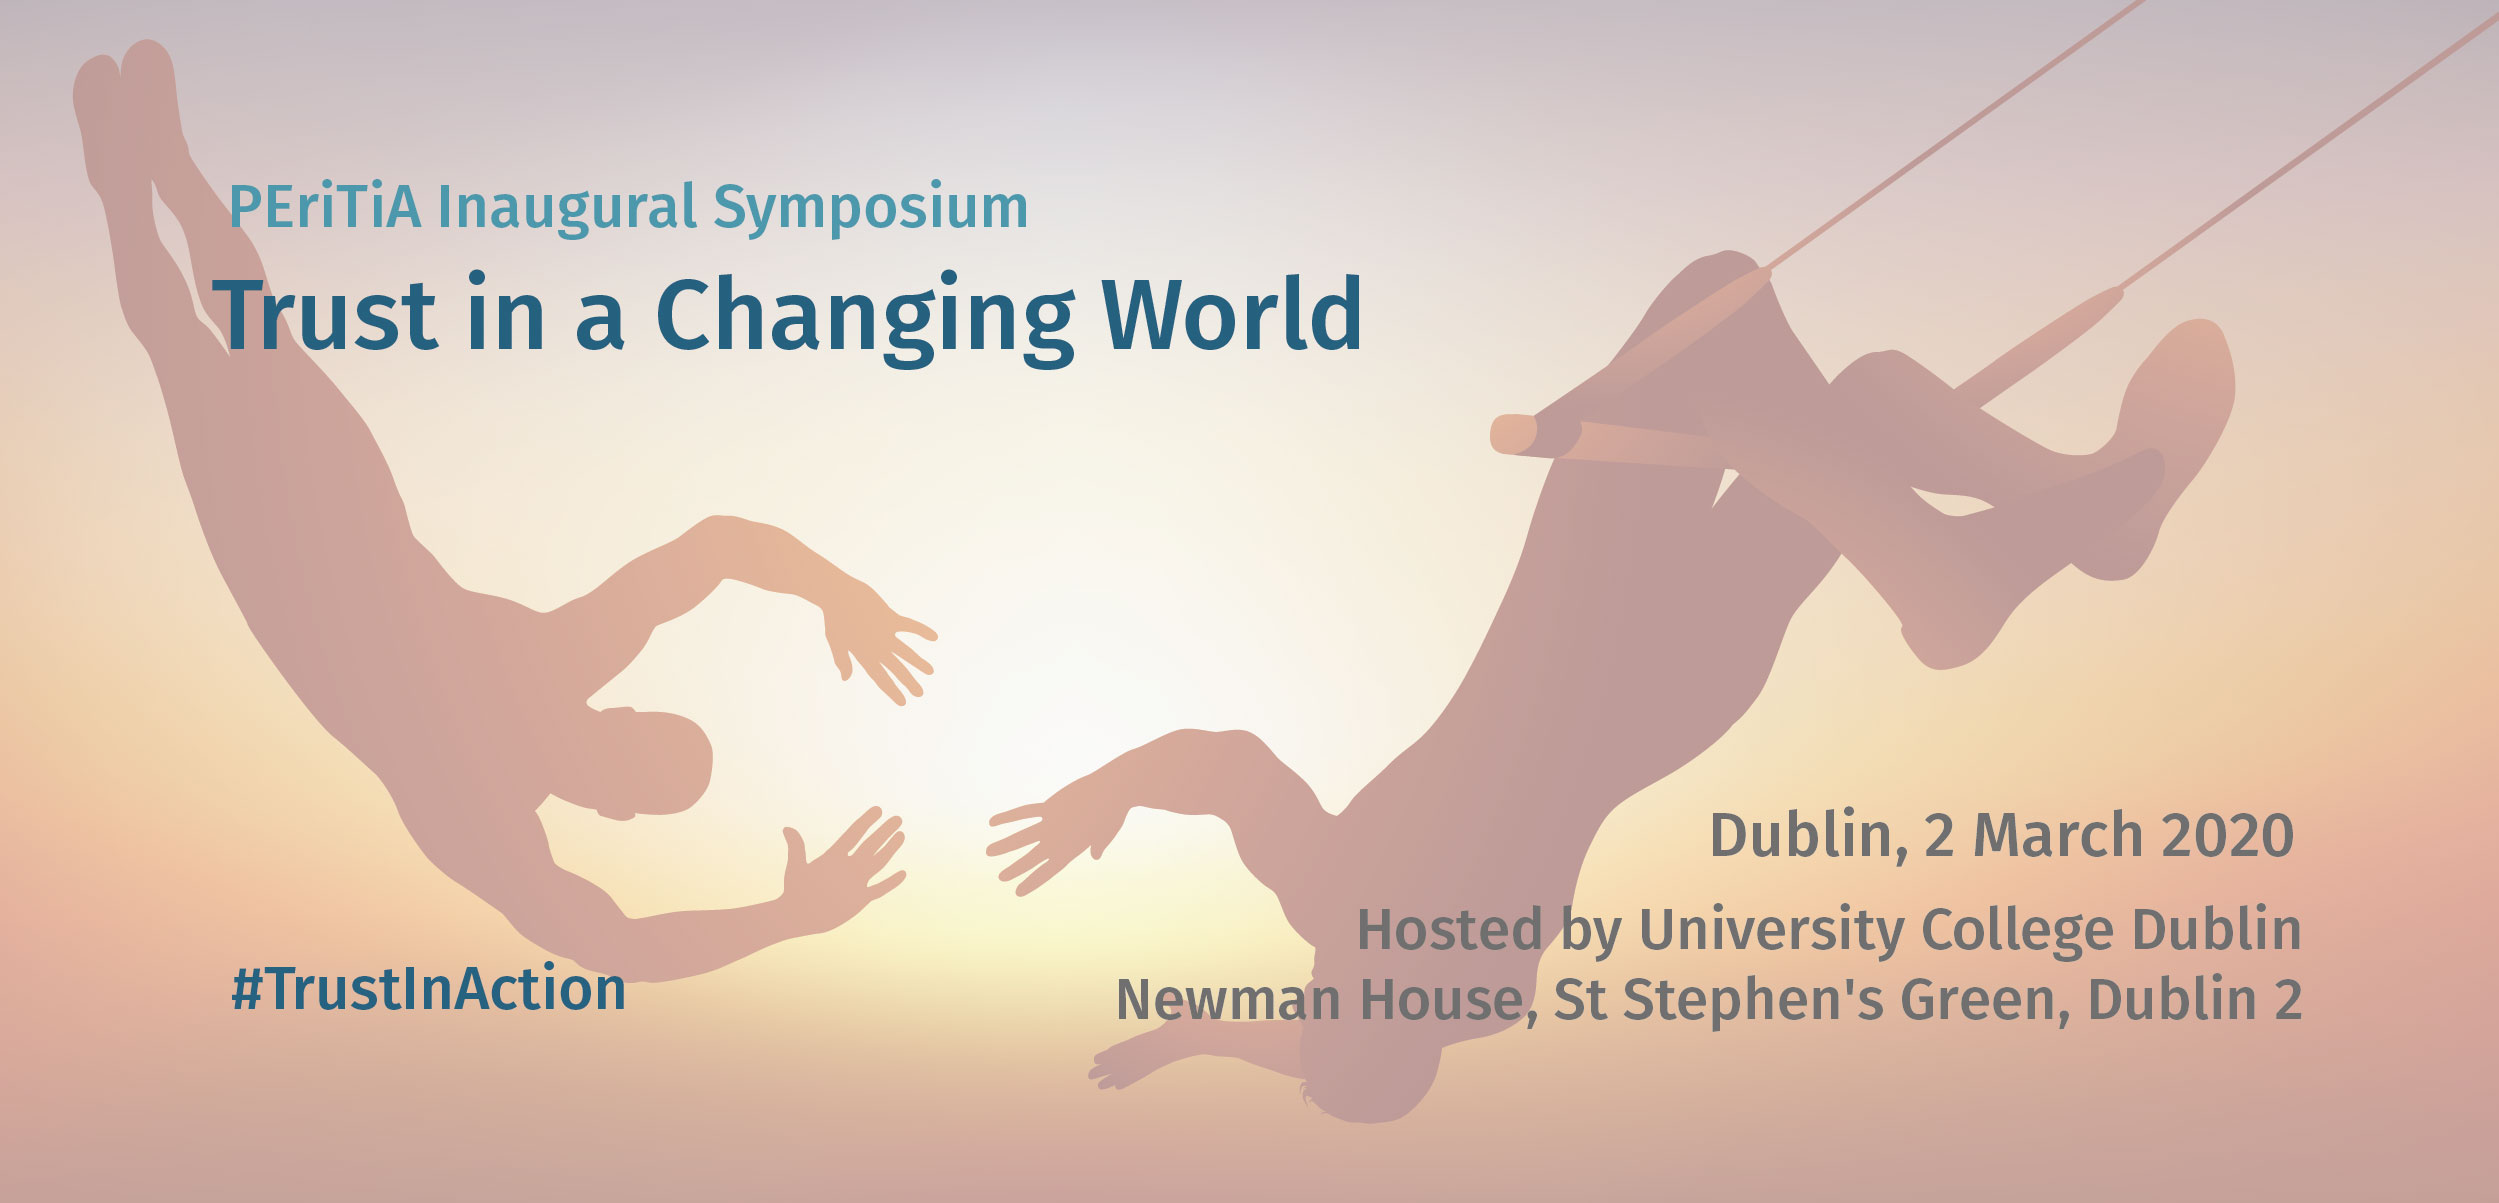 """Videos of the symposium """"Trust in a Changing World"""" now available"""